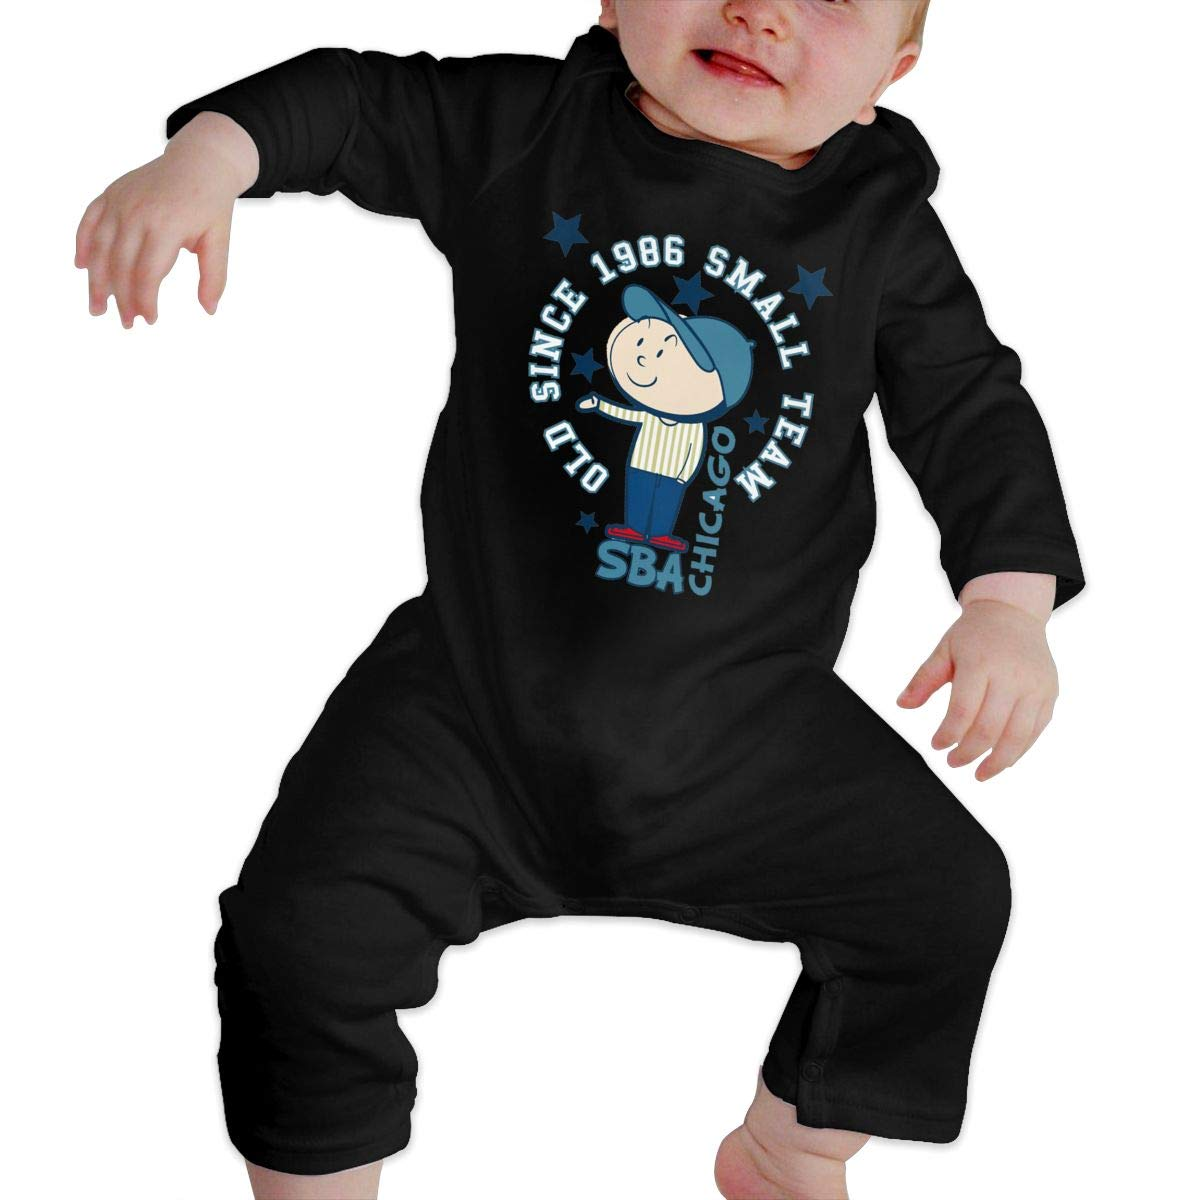 Fasenix Old Since 1986 Small Team Newborn Baby Boy Girl Romper Jumpsuit Long Sleeve Bodysuit Overalls Outfits Clothes